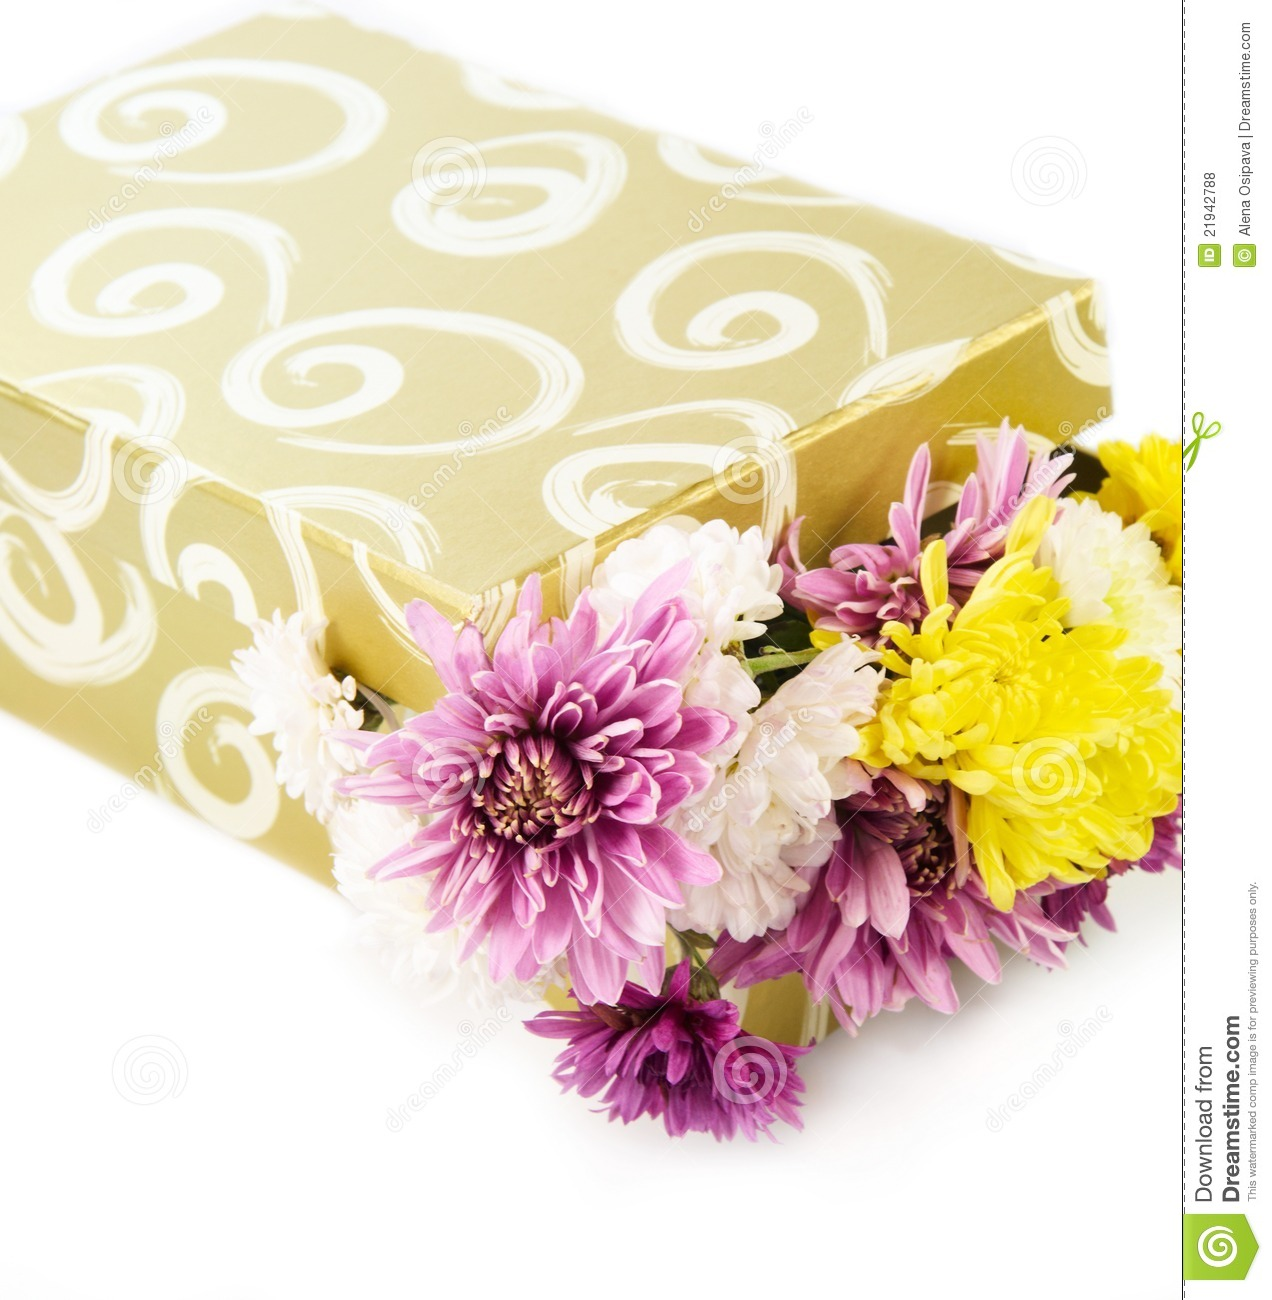 Flowers In A Gift Box Royalty Free Stock s Image